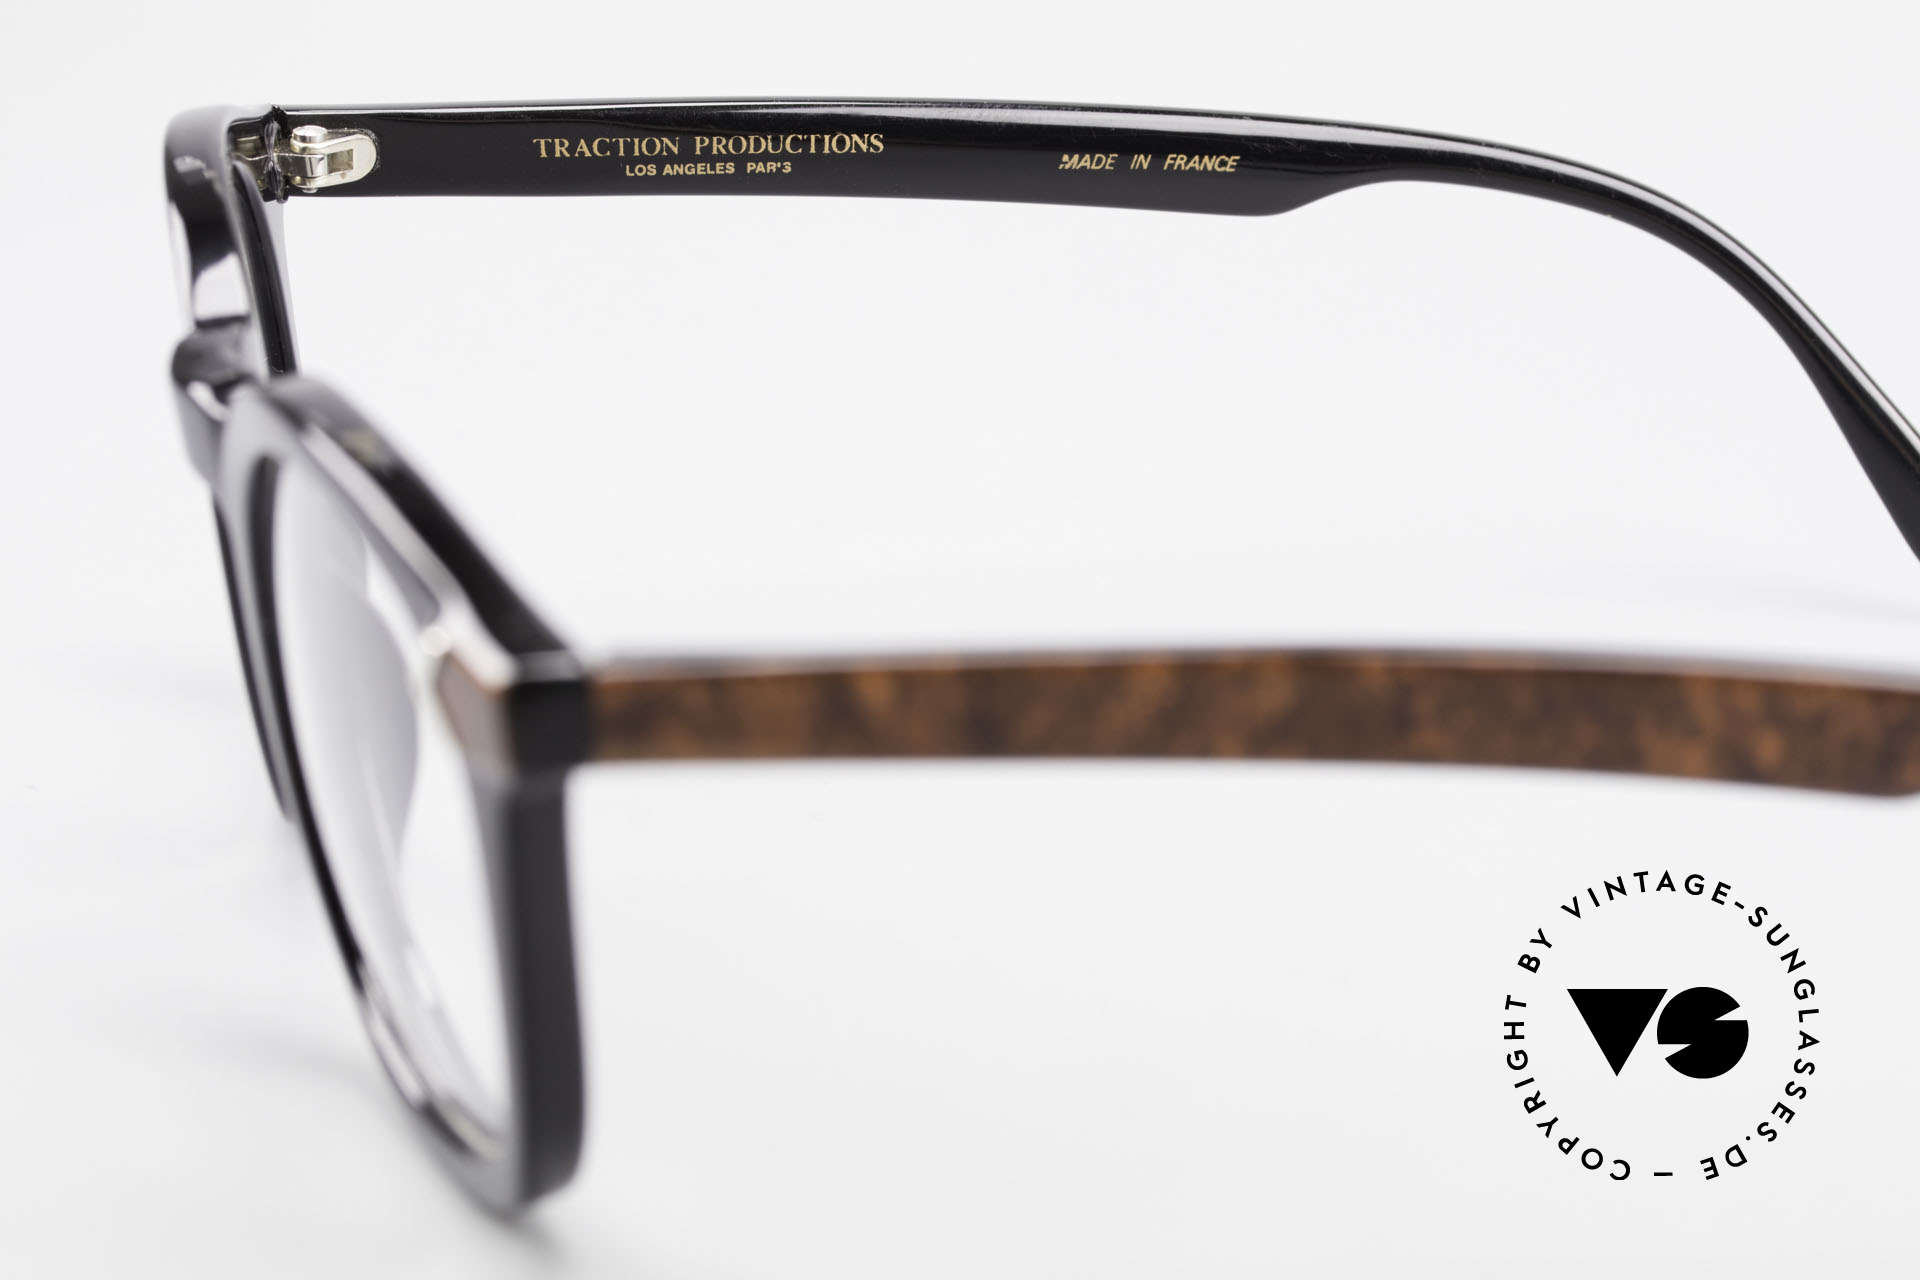 Traction Productions Allen Woody Allen Glasses 1980's, Size: small, Made for Men and Women